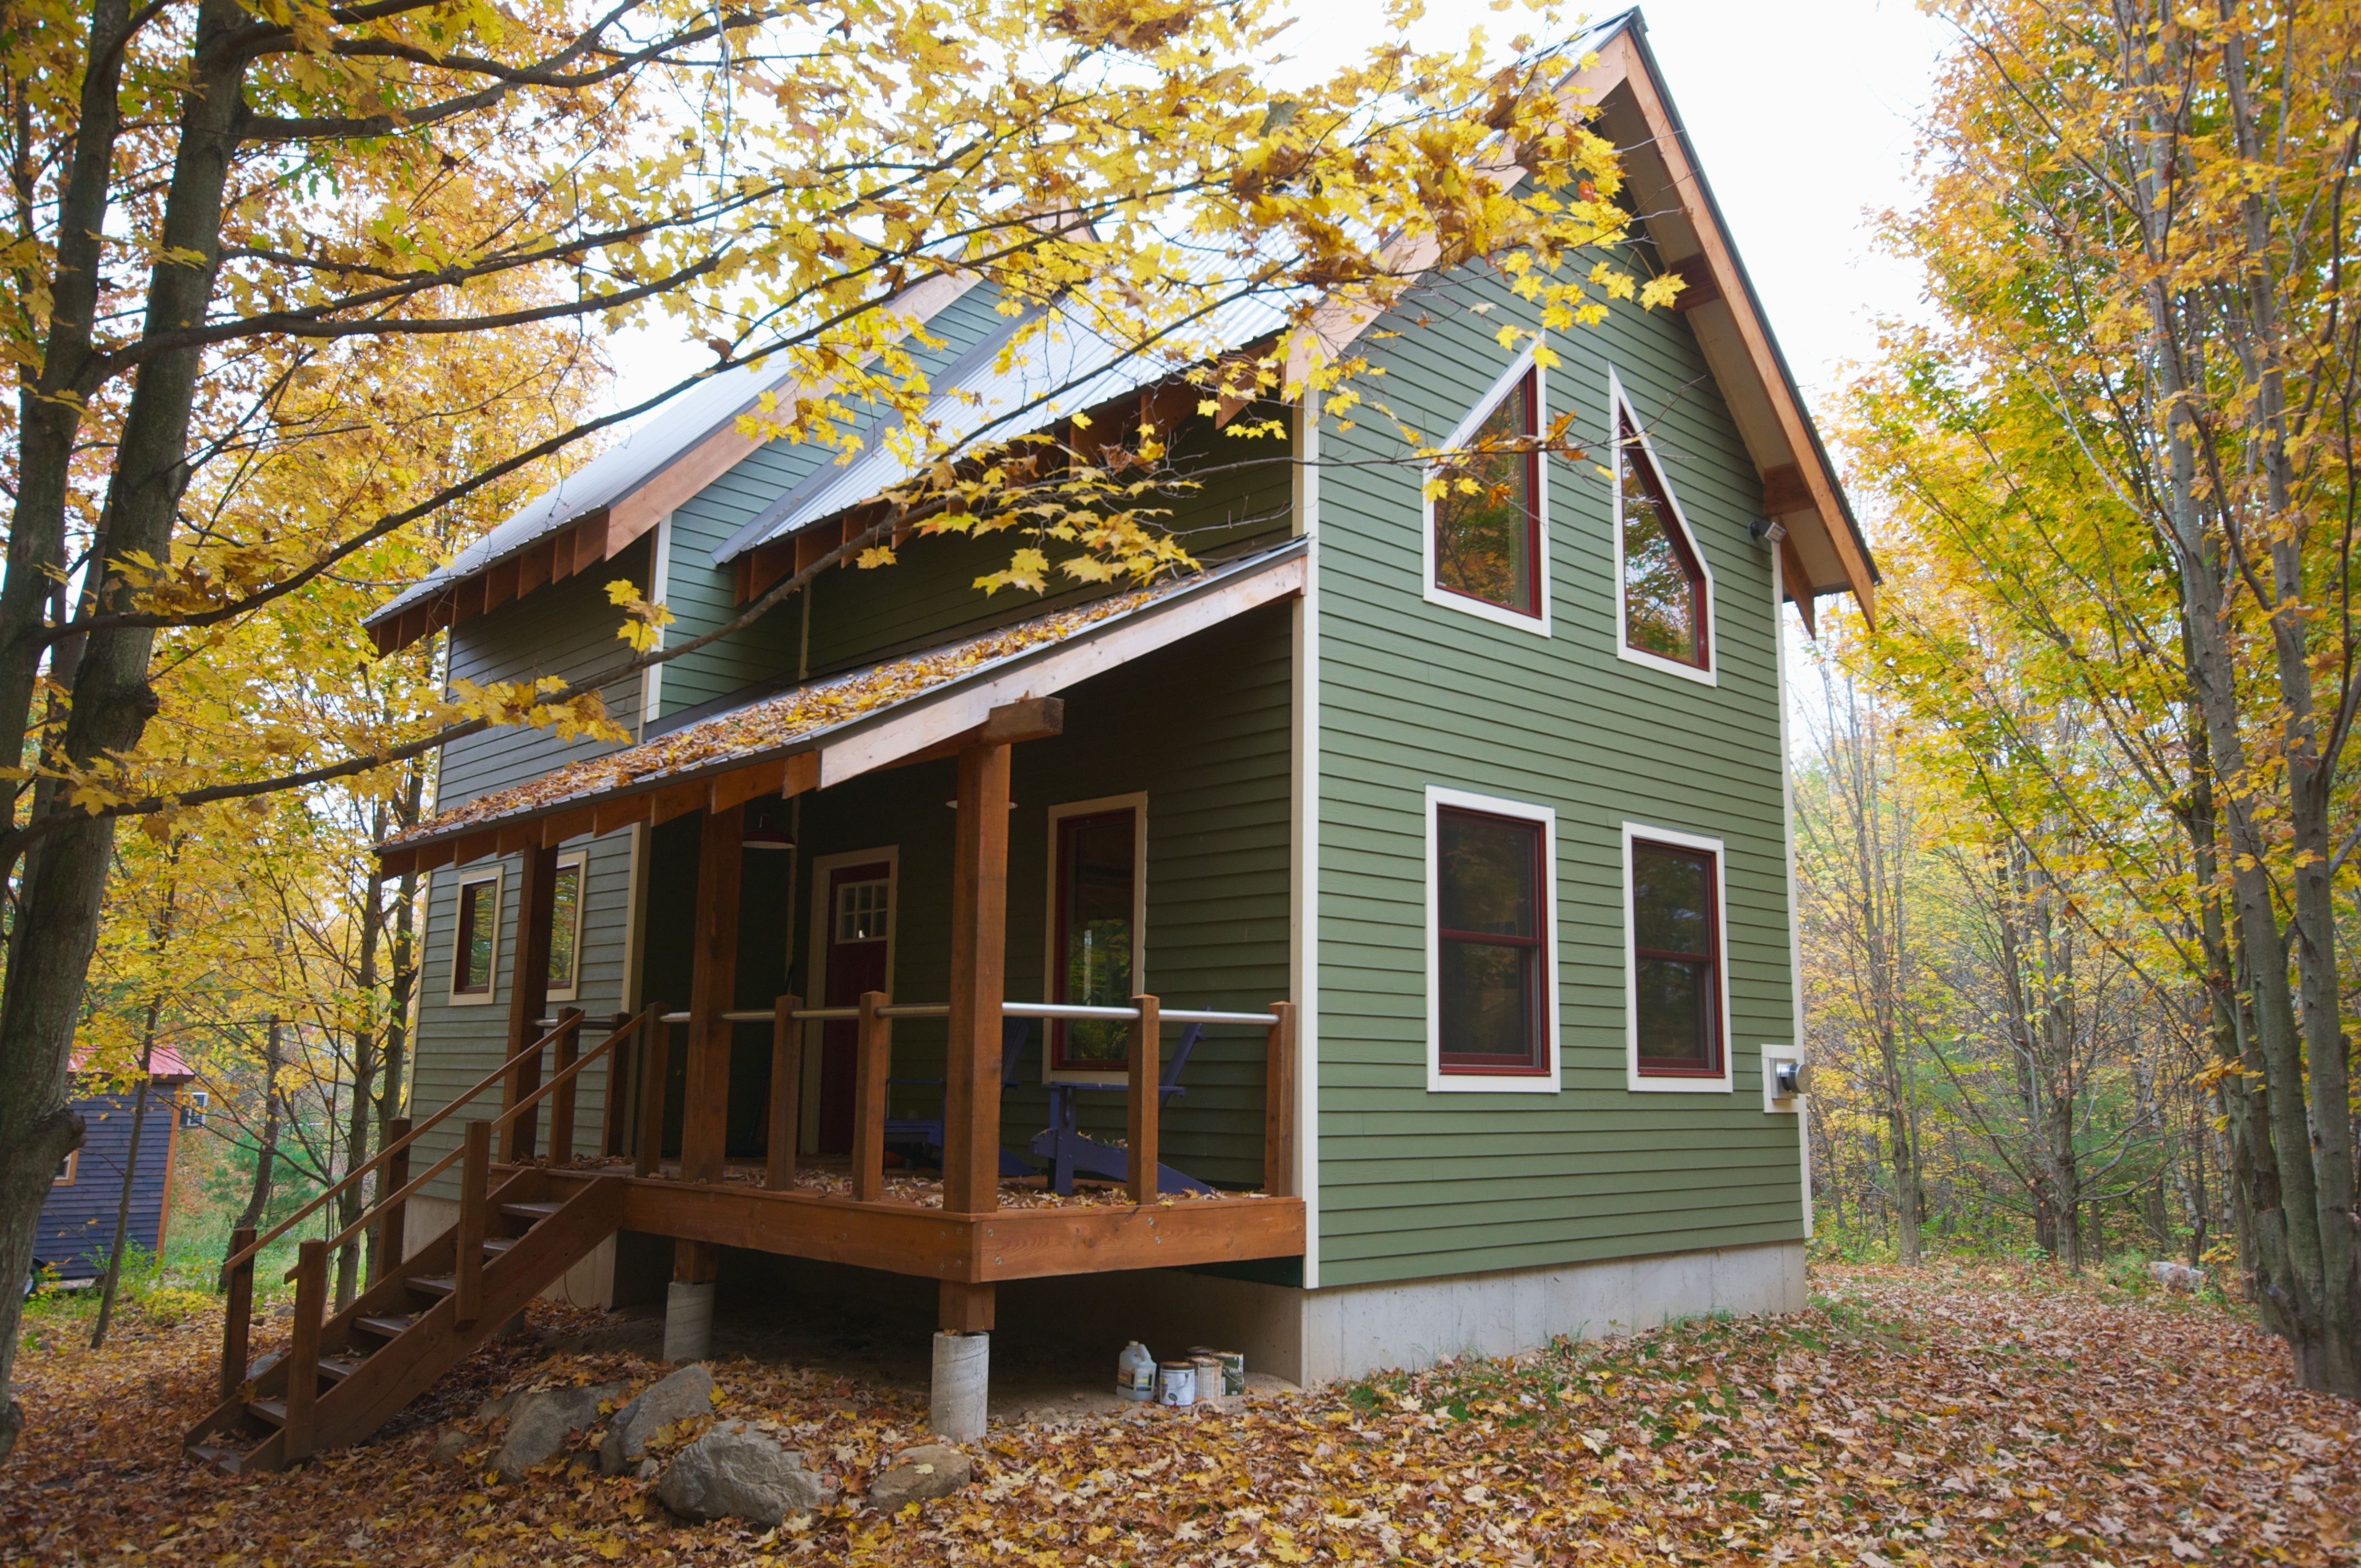 Green house in the woods 1 200 sq ft 2 bedroom loft 2 bath 3 story home bear creek - Small green home designs ...